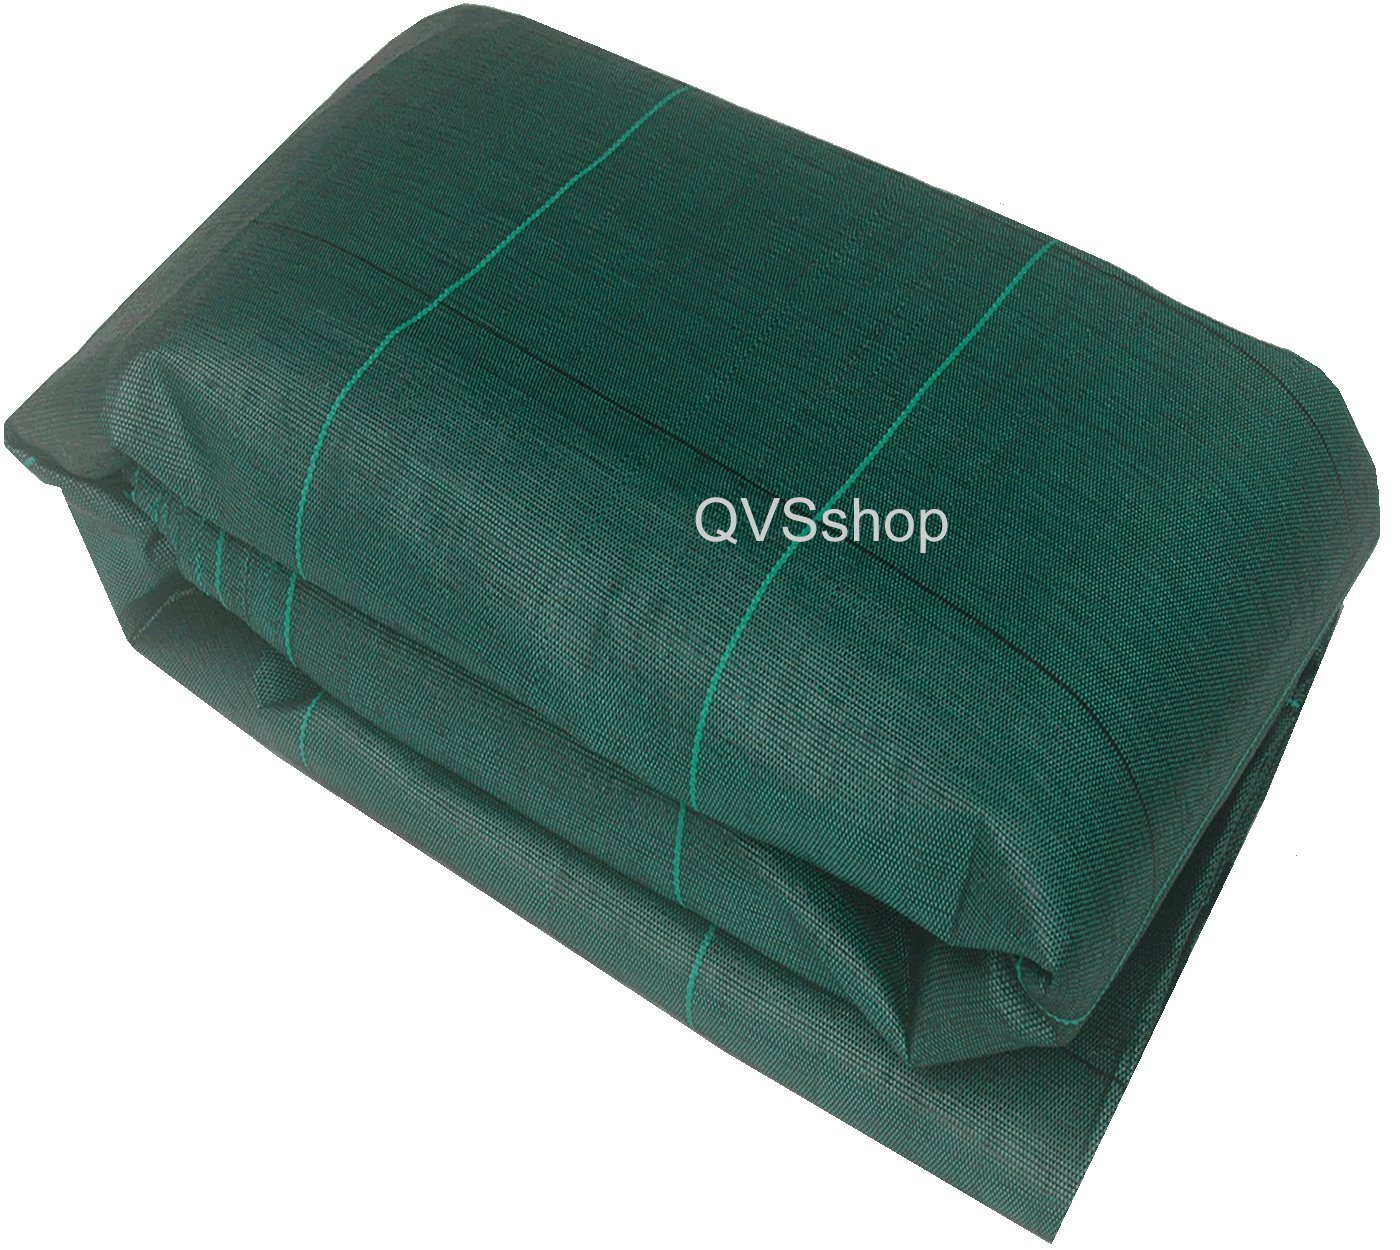 QVS Shop 4M X 10M Green 125gsm Weed Control Fabric With 24 Plastic Pegs